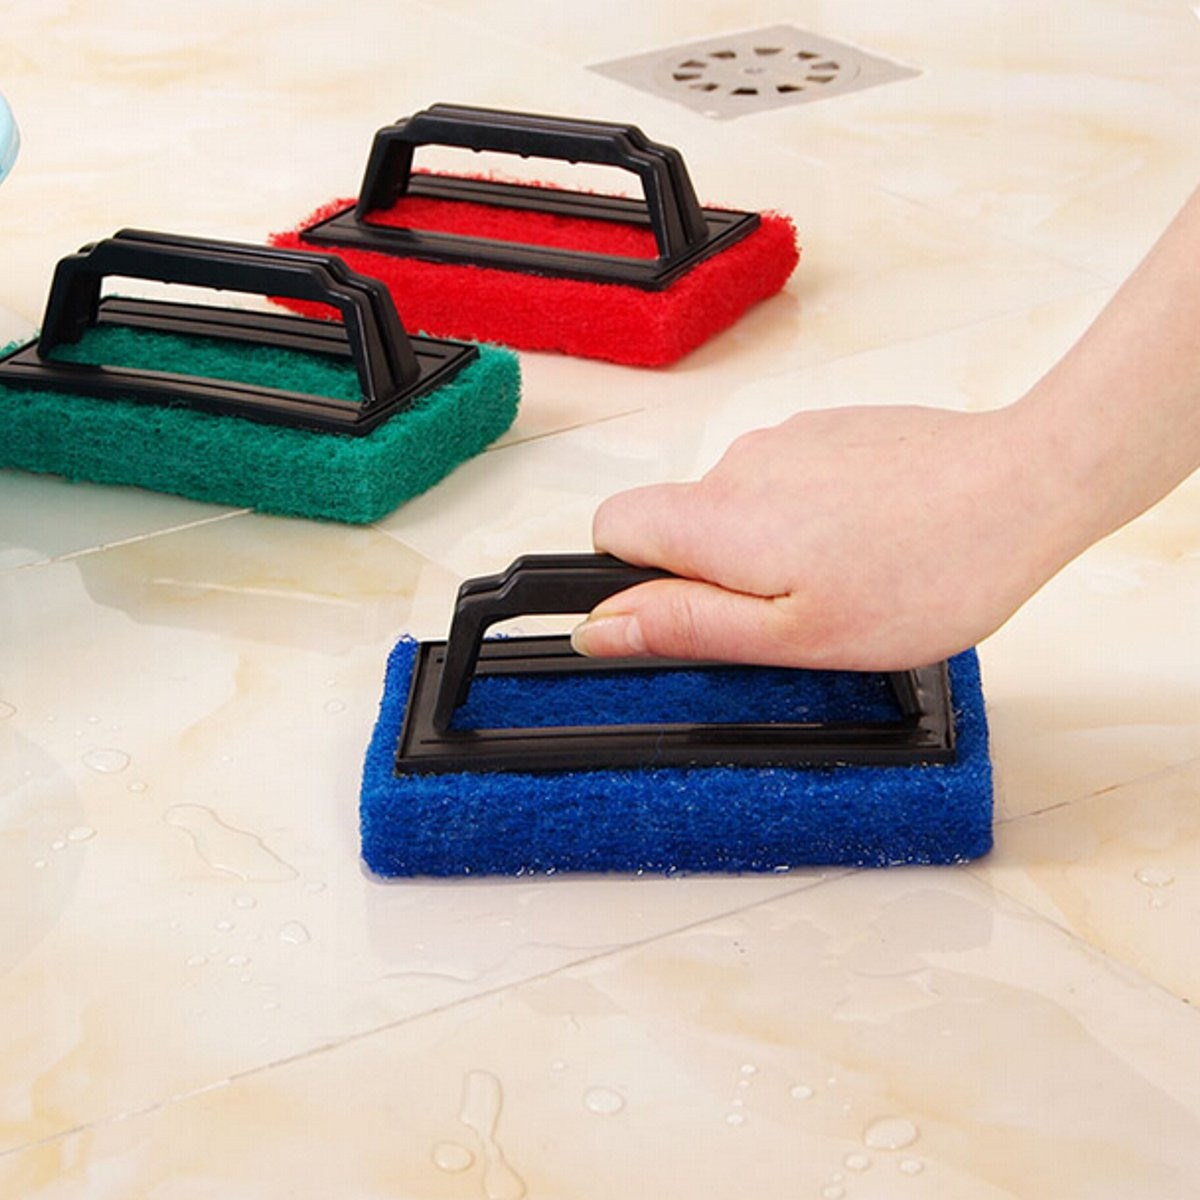 New Household Cleaning Brush Multi-functional Magic Barthroom Litchen Foam Sponge Eraser Stain Remover Melamine Pad Cleaner(China (Mainland))